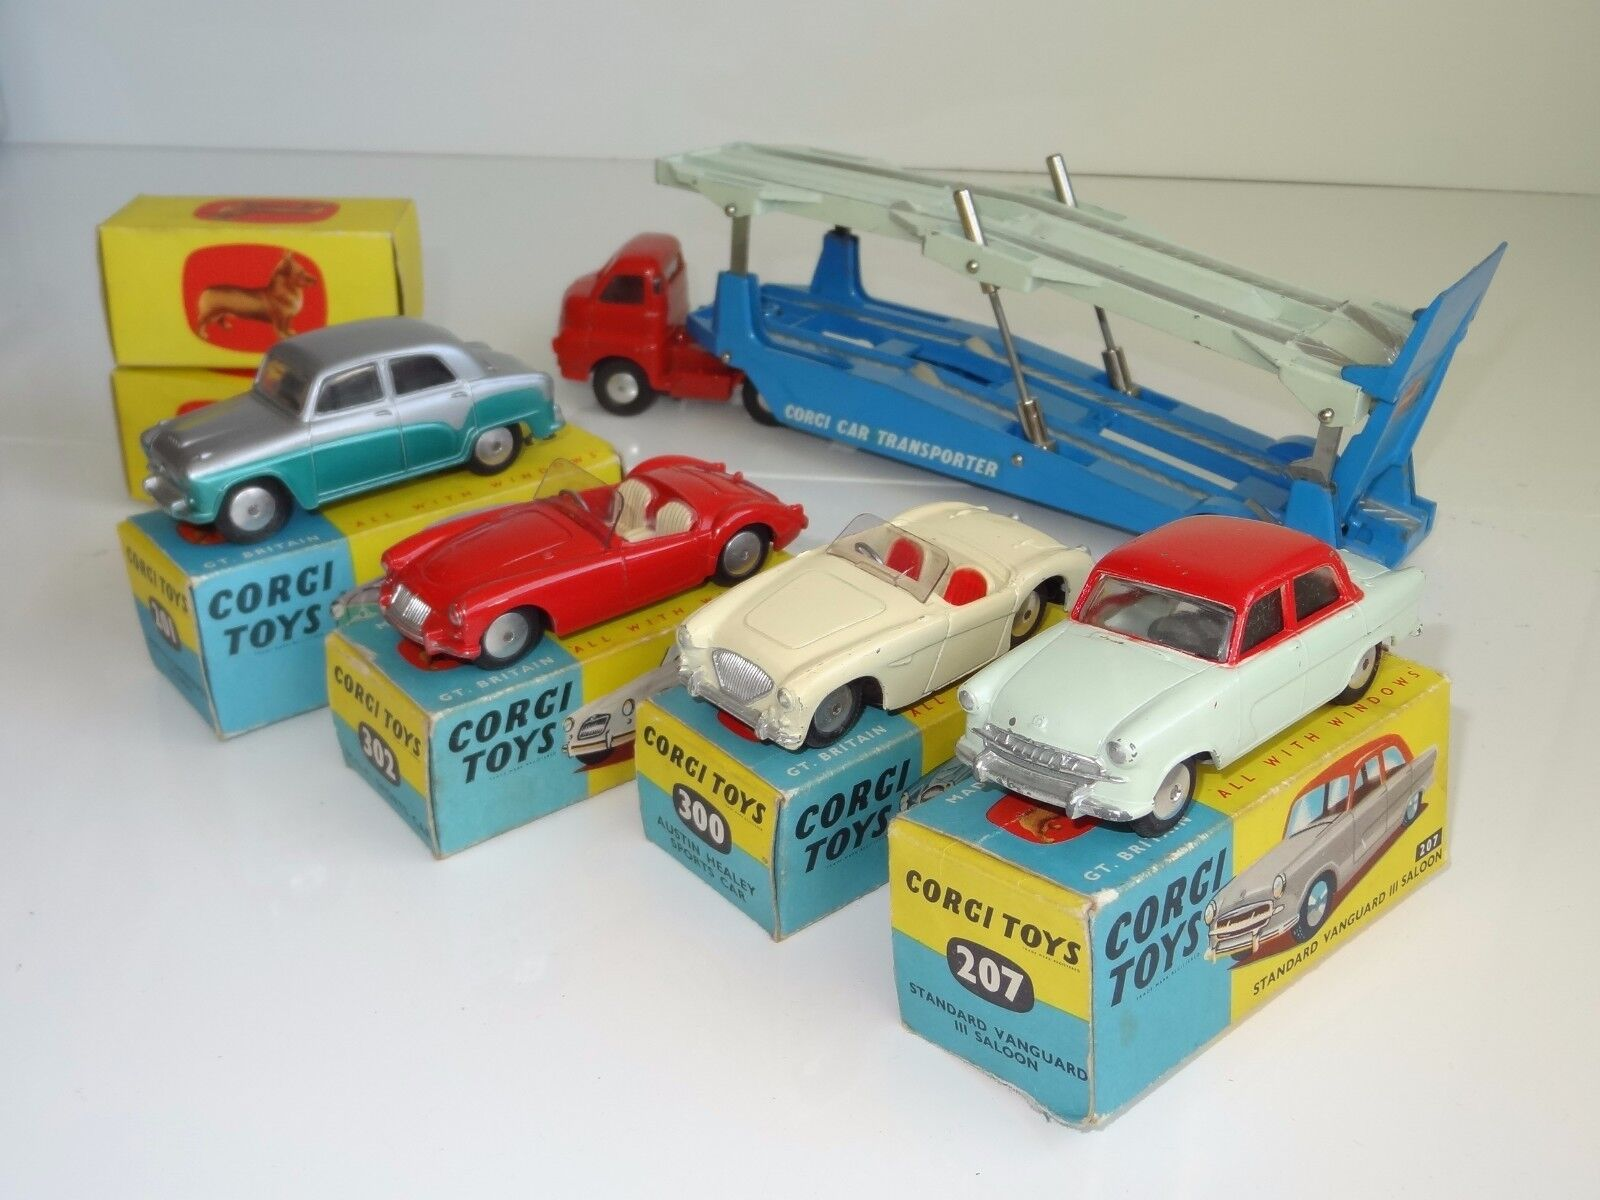 (SH) corgi CARRIMORE CARRIMORE CARRIMORE CAR TRANSPORTER WITH 4 CARS GIFTSET - GS 1 aa68e4